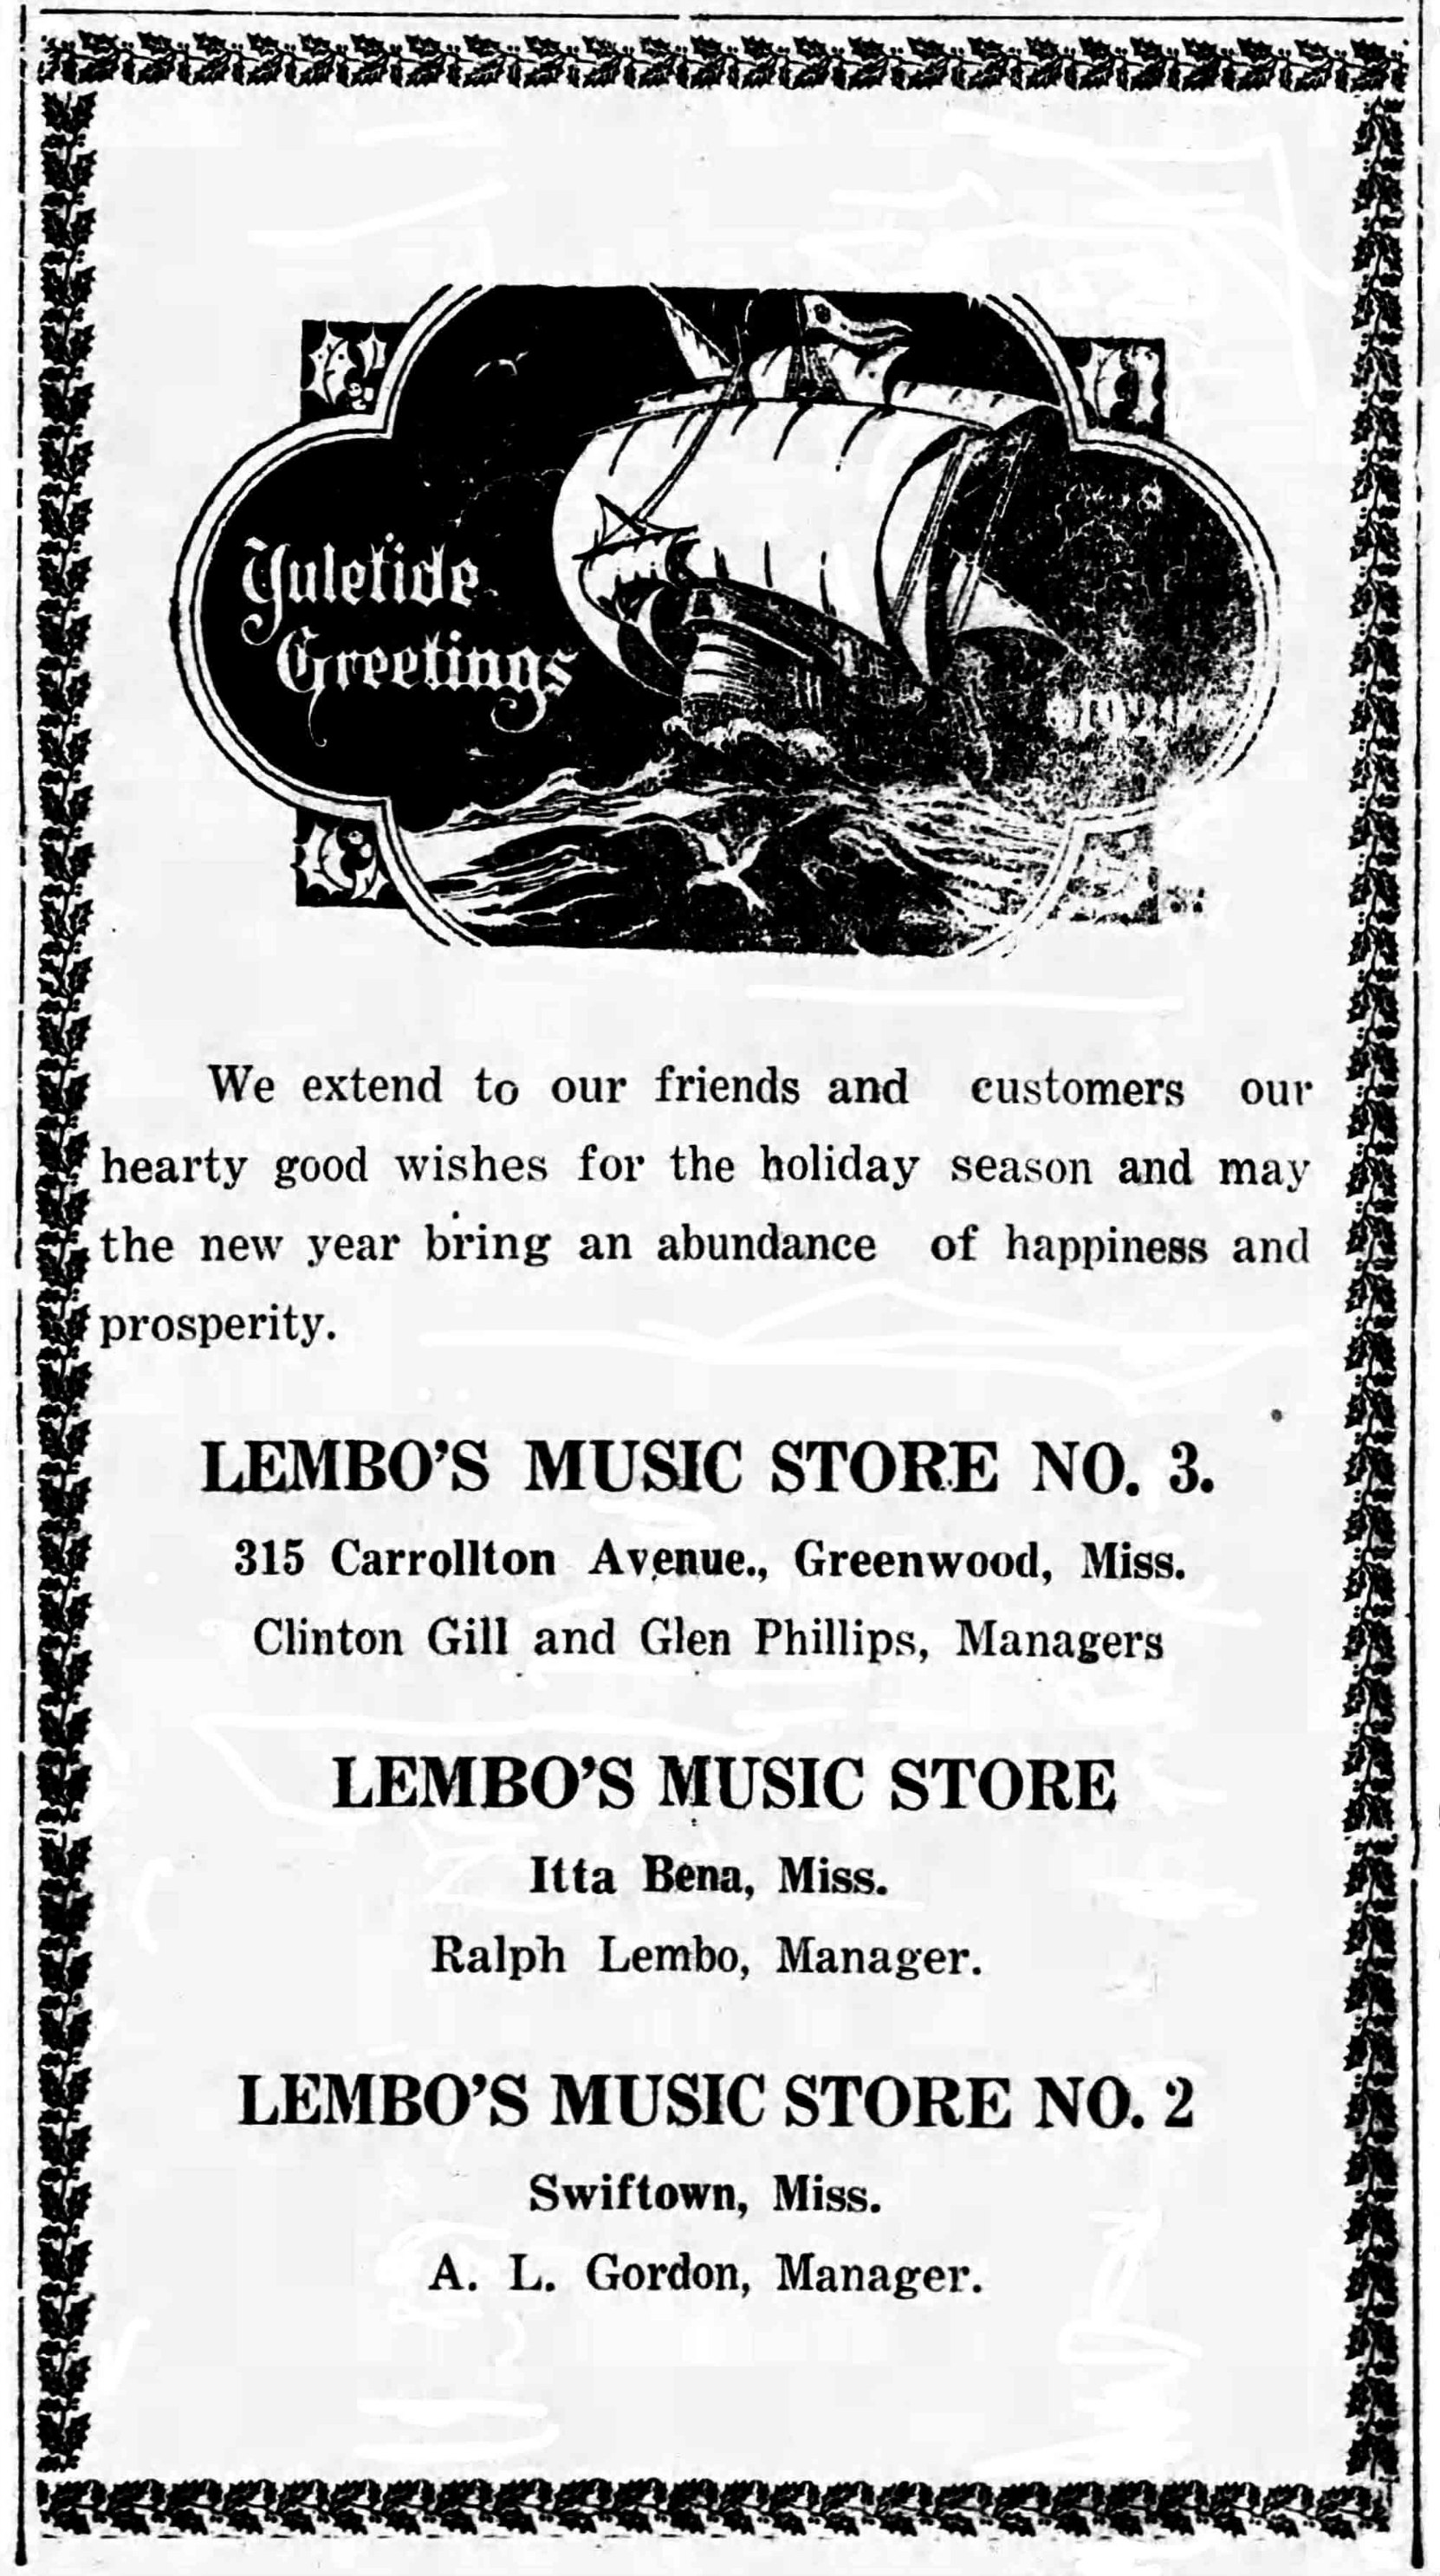 Ralph Lembo Music Store advertisement in Greenwood Commonwealth, December 1928